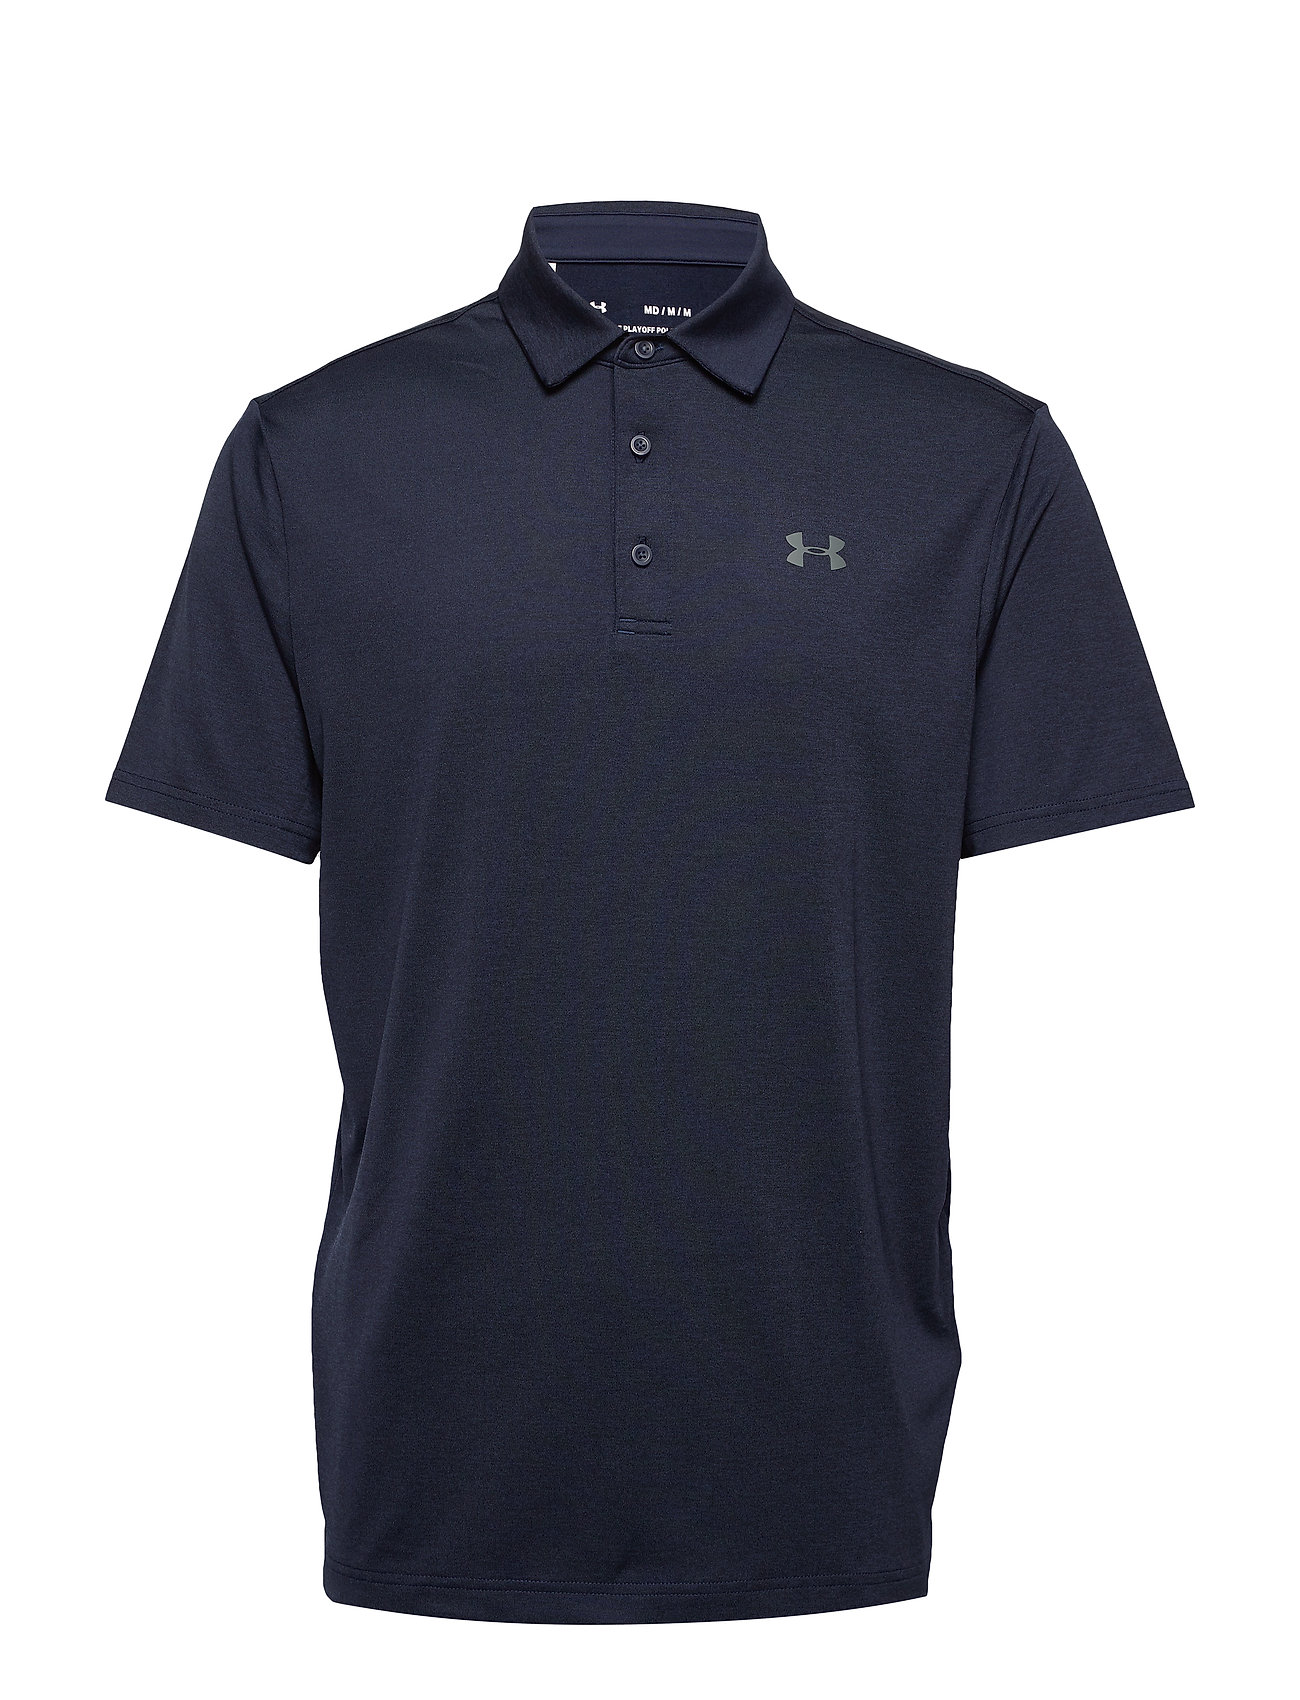 Under Armour Playoff Polo 2.0 - ACADEMY